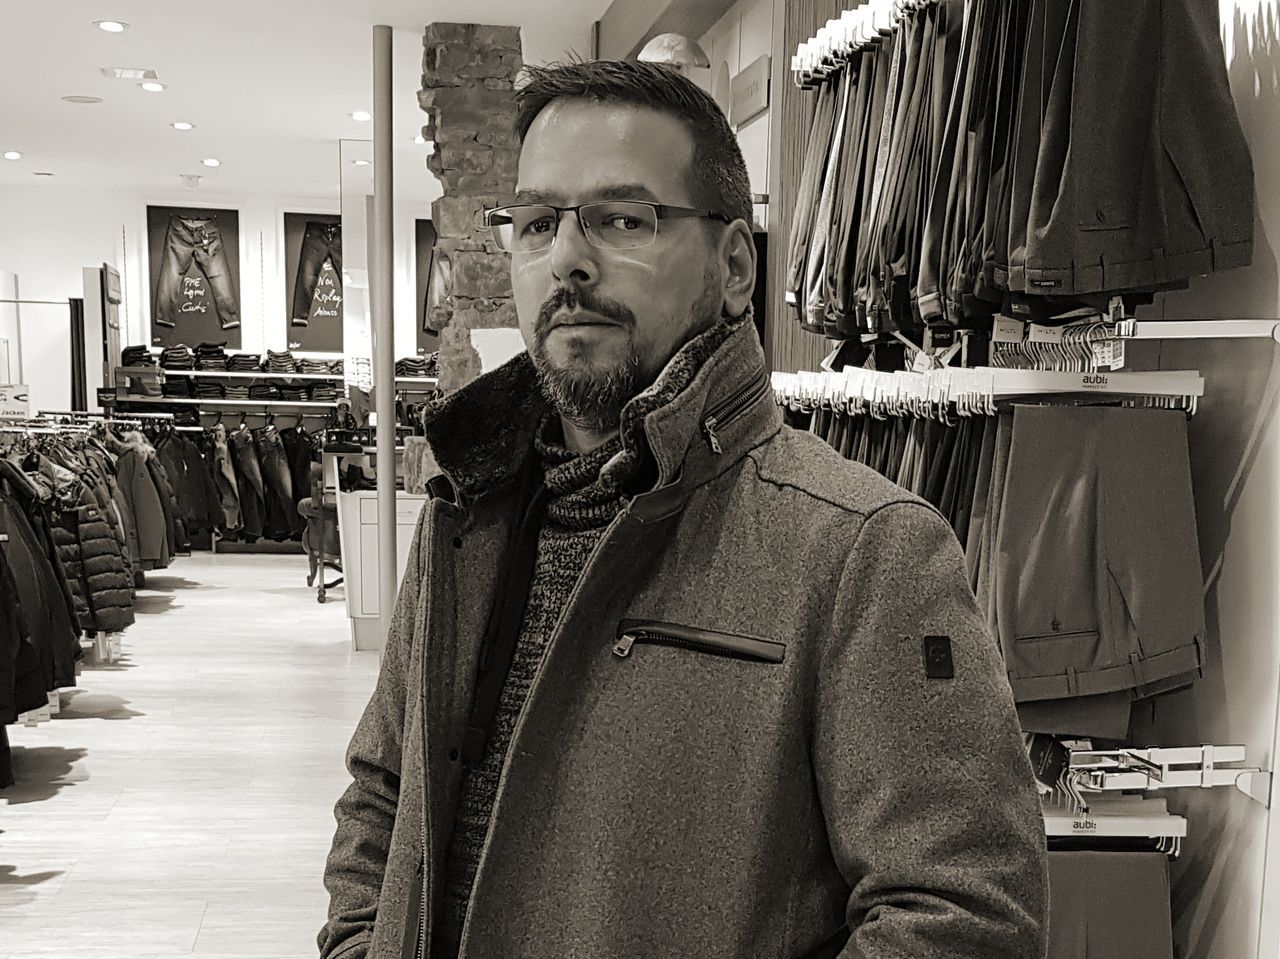 one person, clothing, portrait, mature adult, mature men, looking at camera, waist up, indoors, adult, fashion, shopping, business, men, males, glasses, retail, store, standing, consumerism, warm clothing